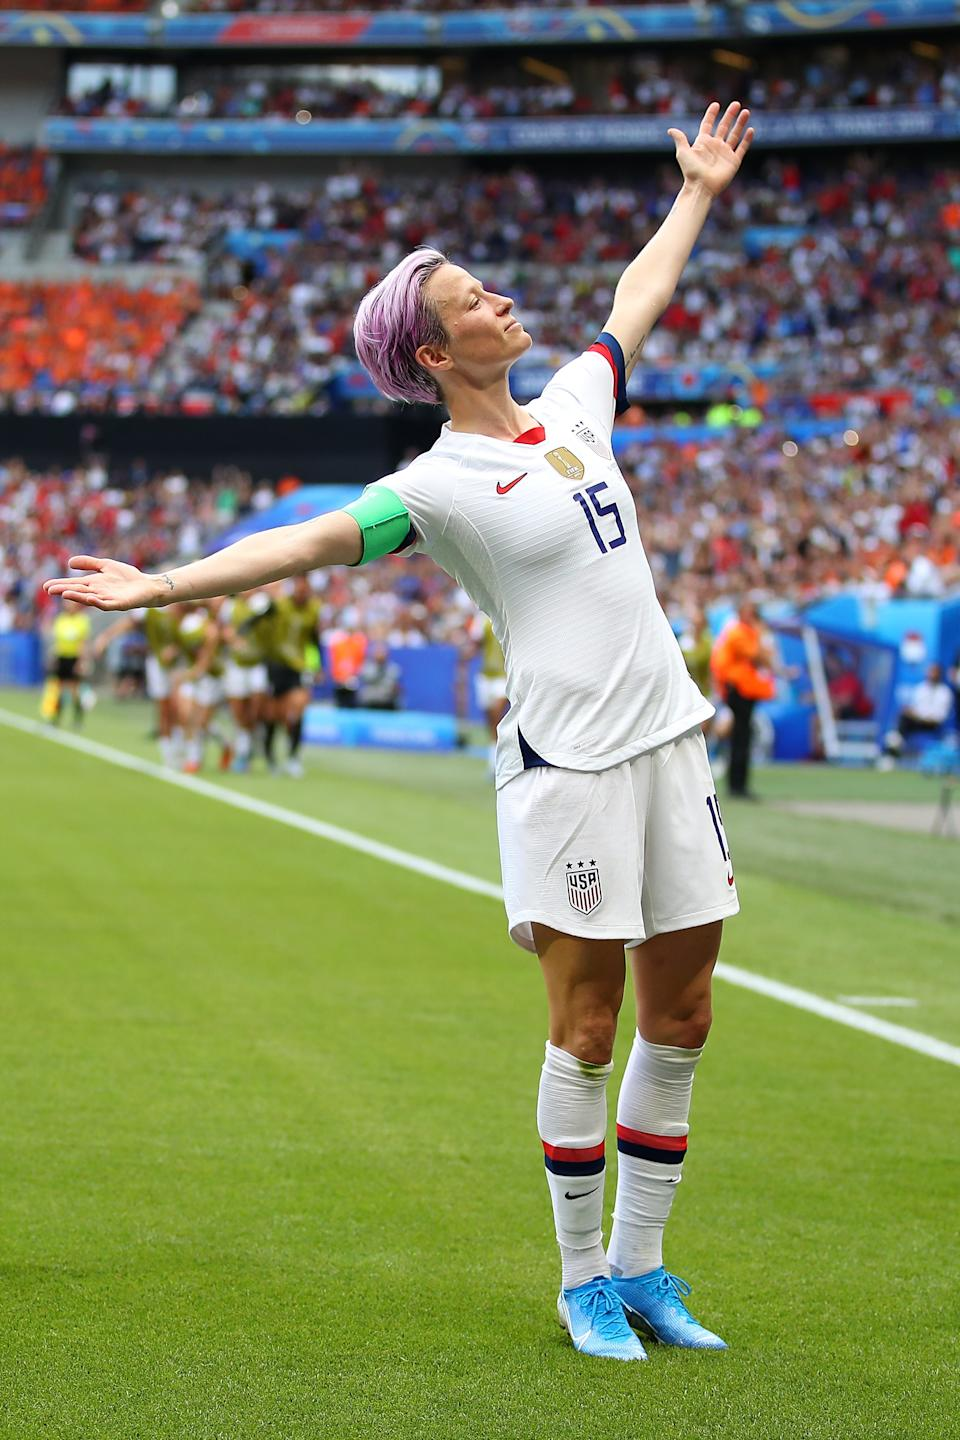 Rapinoe celebrates scoring the first goal from the penalty spot during the 2019 FIFA Women's World Cup France final match between the United States of America and the Netherlands at Stade de Lyon in Lyon, France, on July 07, 2019.